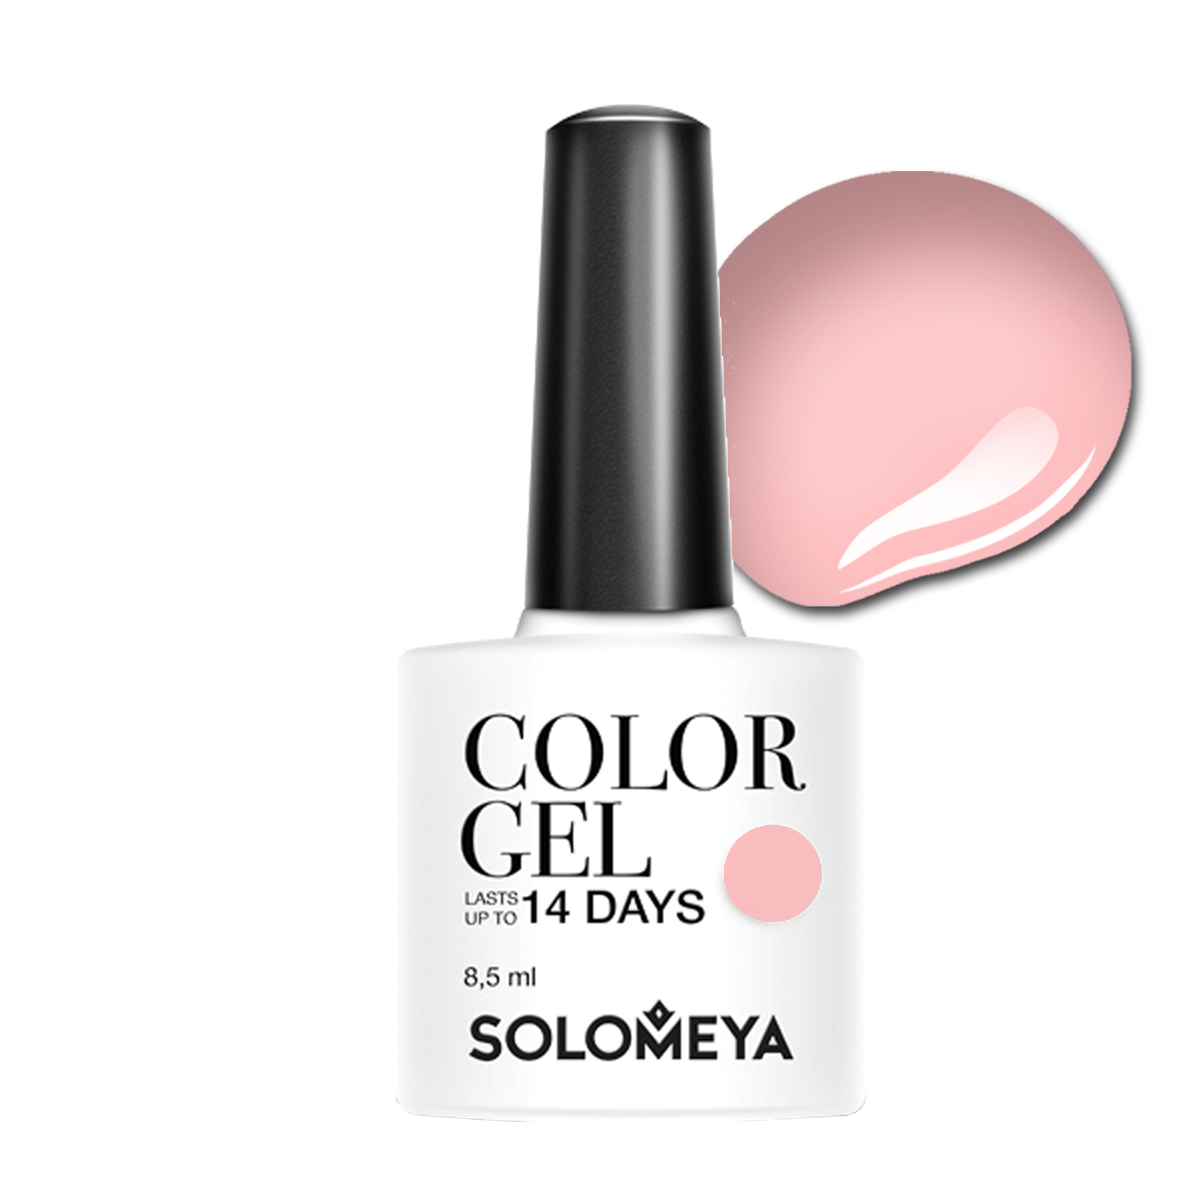 SOLOMEYA Гель-лак для ногтей SCG020 Чайная роза / Color Gel Tea Rose 8,5 мл толстовка mishka fl13 1206a black m